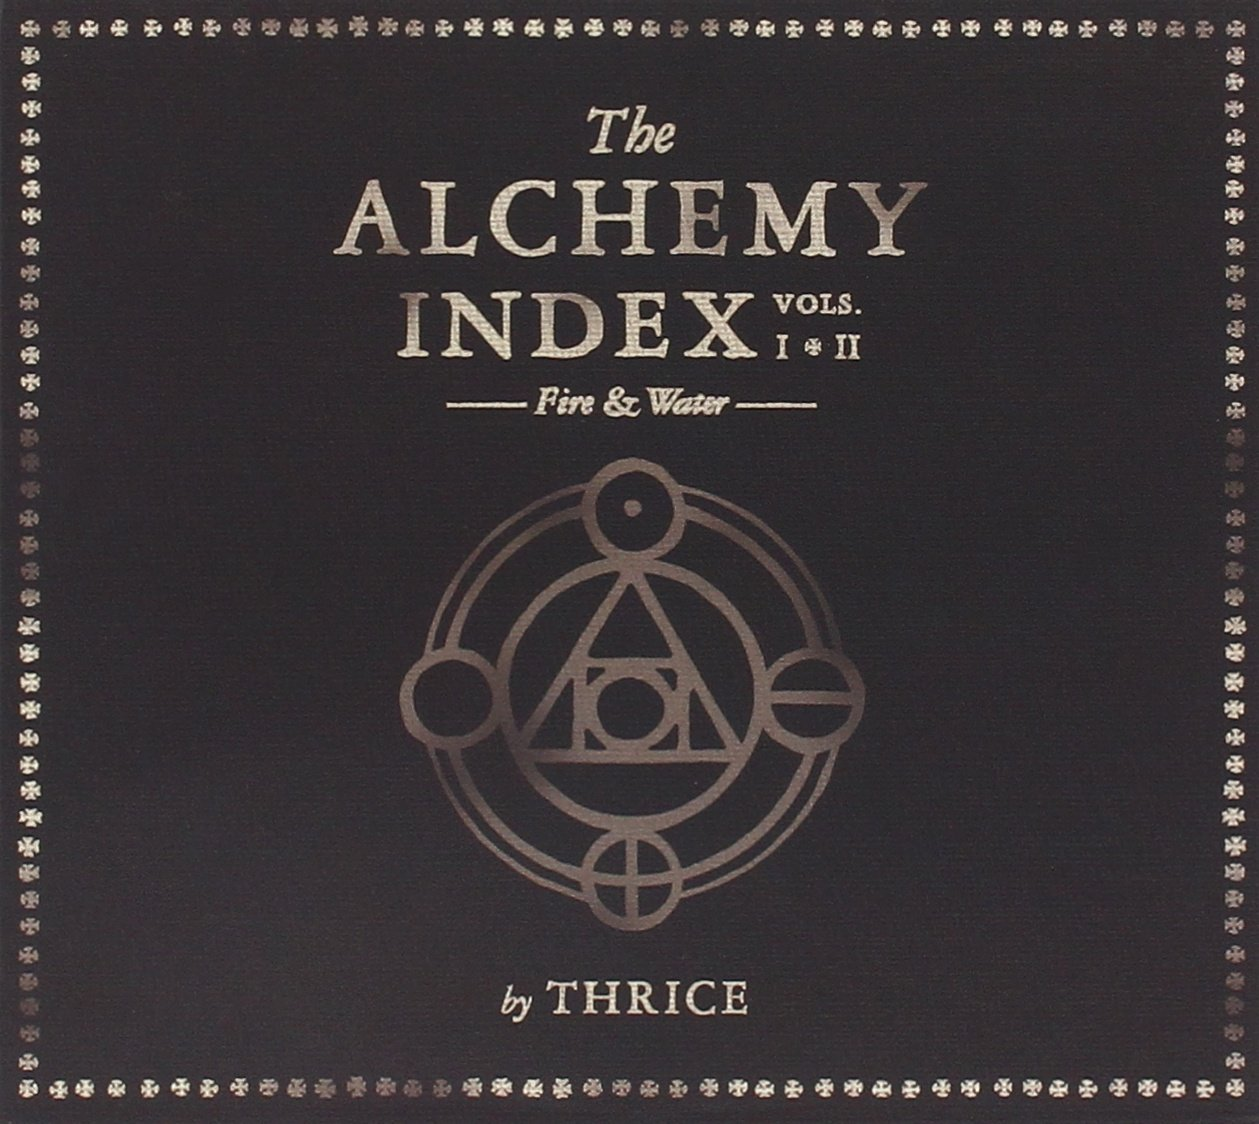 Thrice - The Alchemy Index, Vols. 1 & 2: Fire & Water - Amazon.com ...